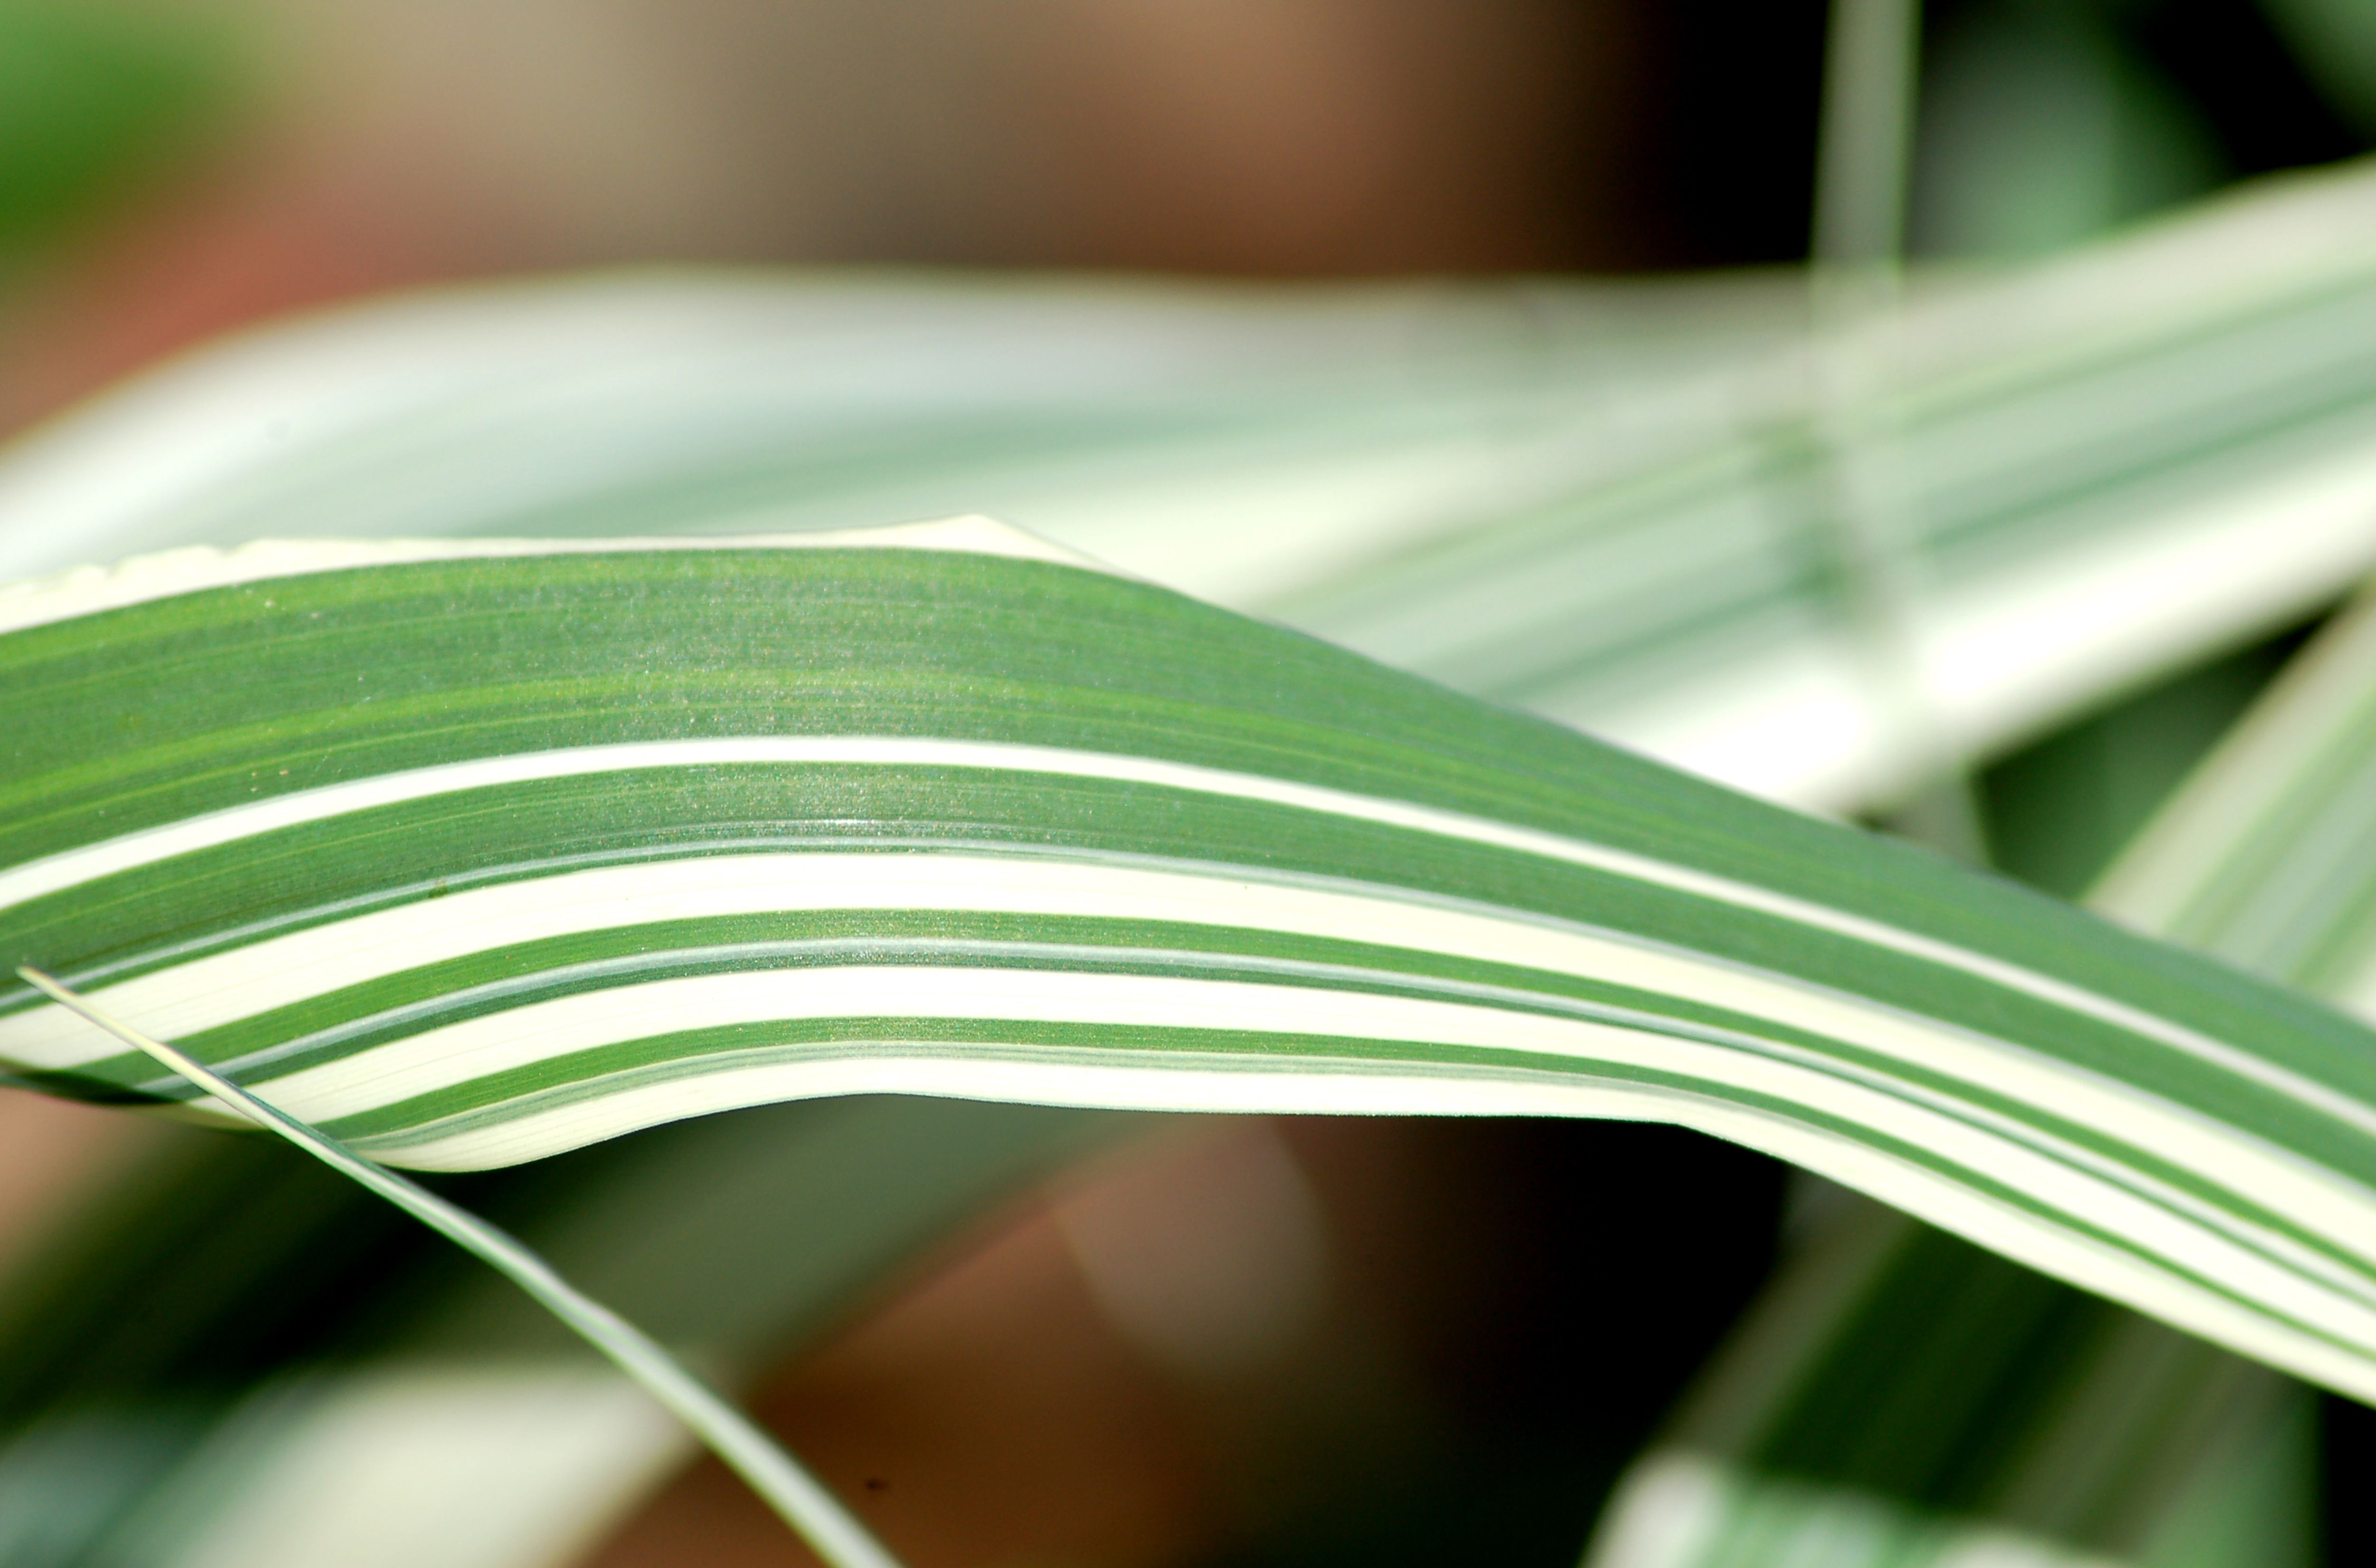 Close up of ribbon grass blade with its variegation.